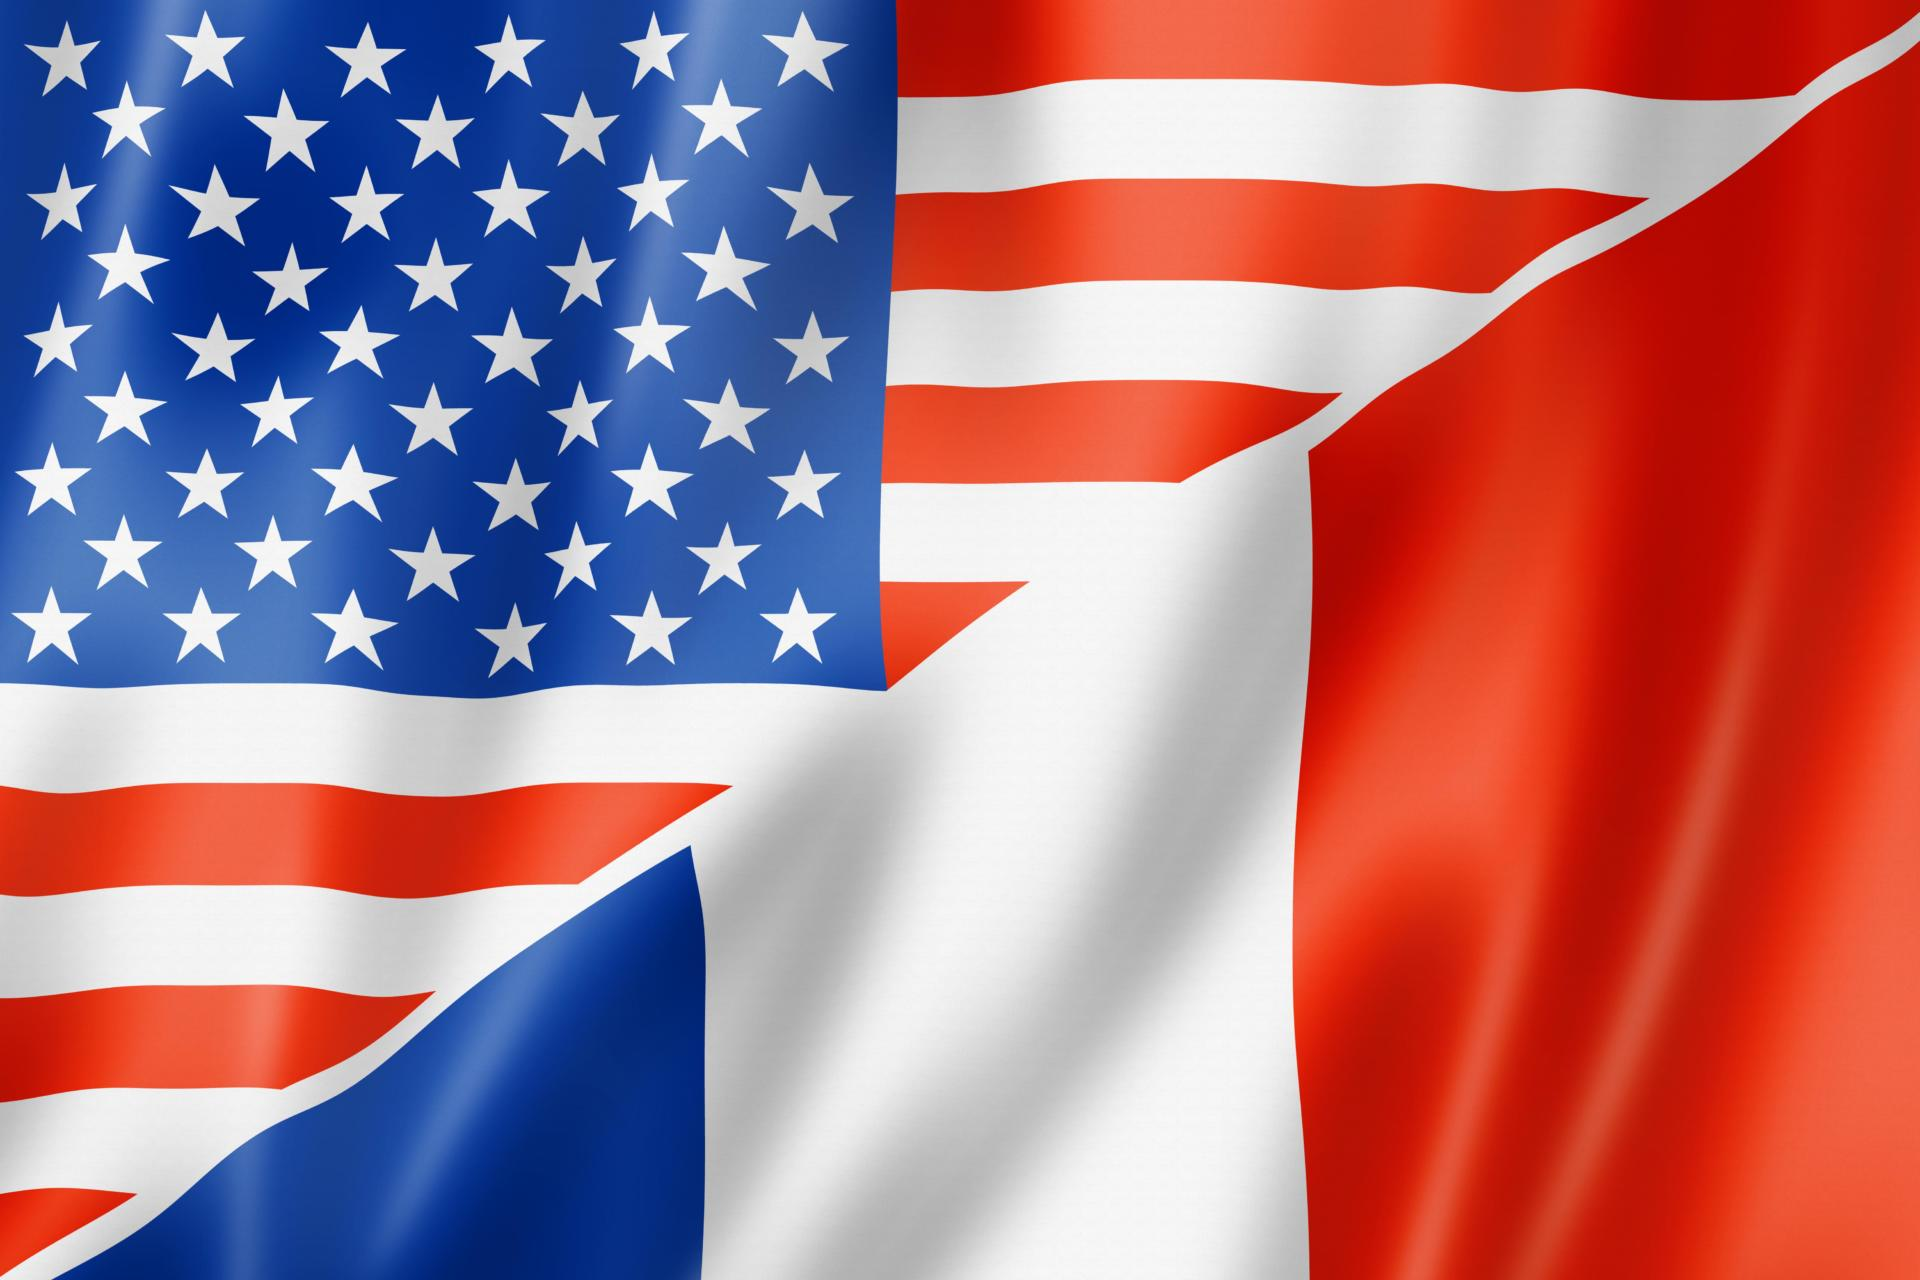 US and France-Refunds on French Taxes